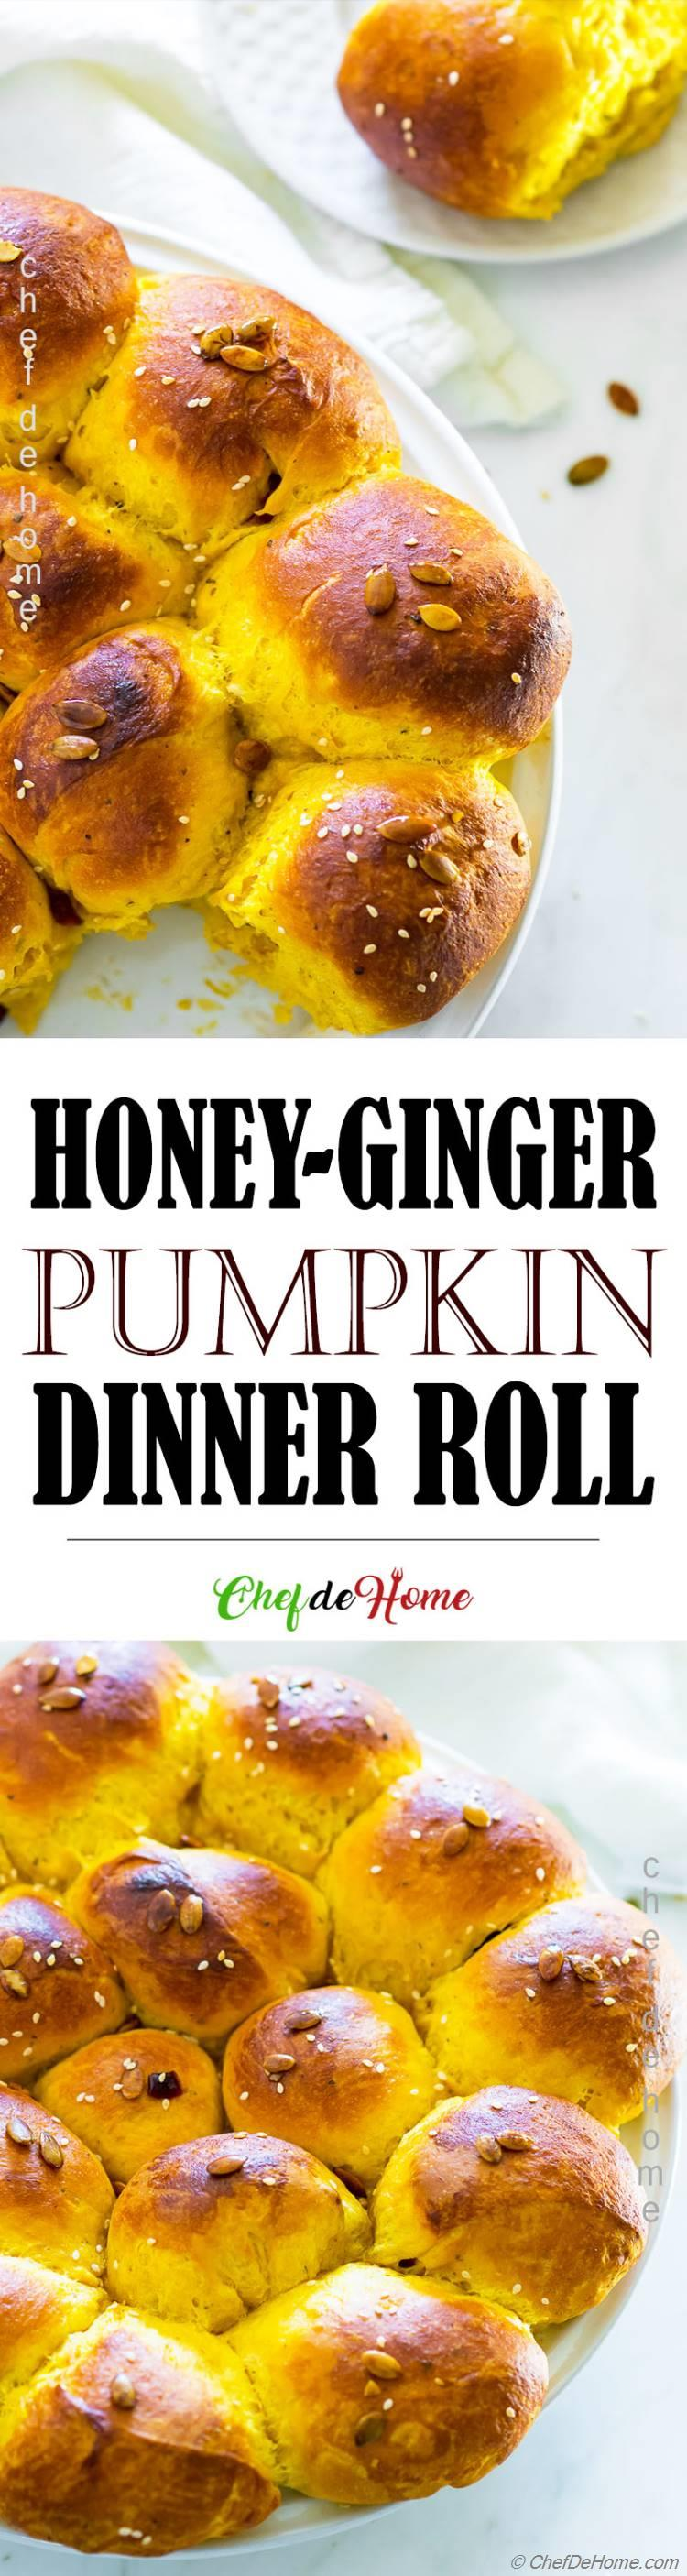 Pumpkin Dinner Roll Recipe